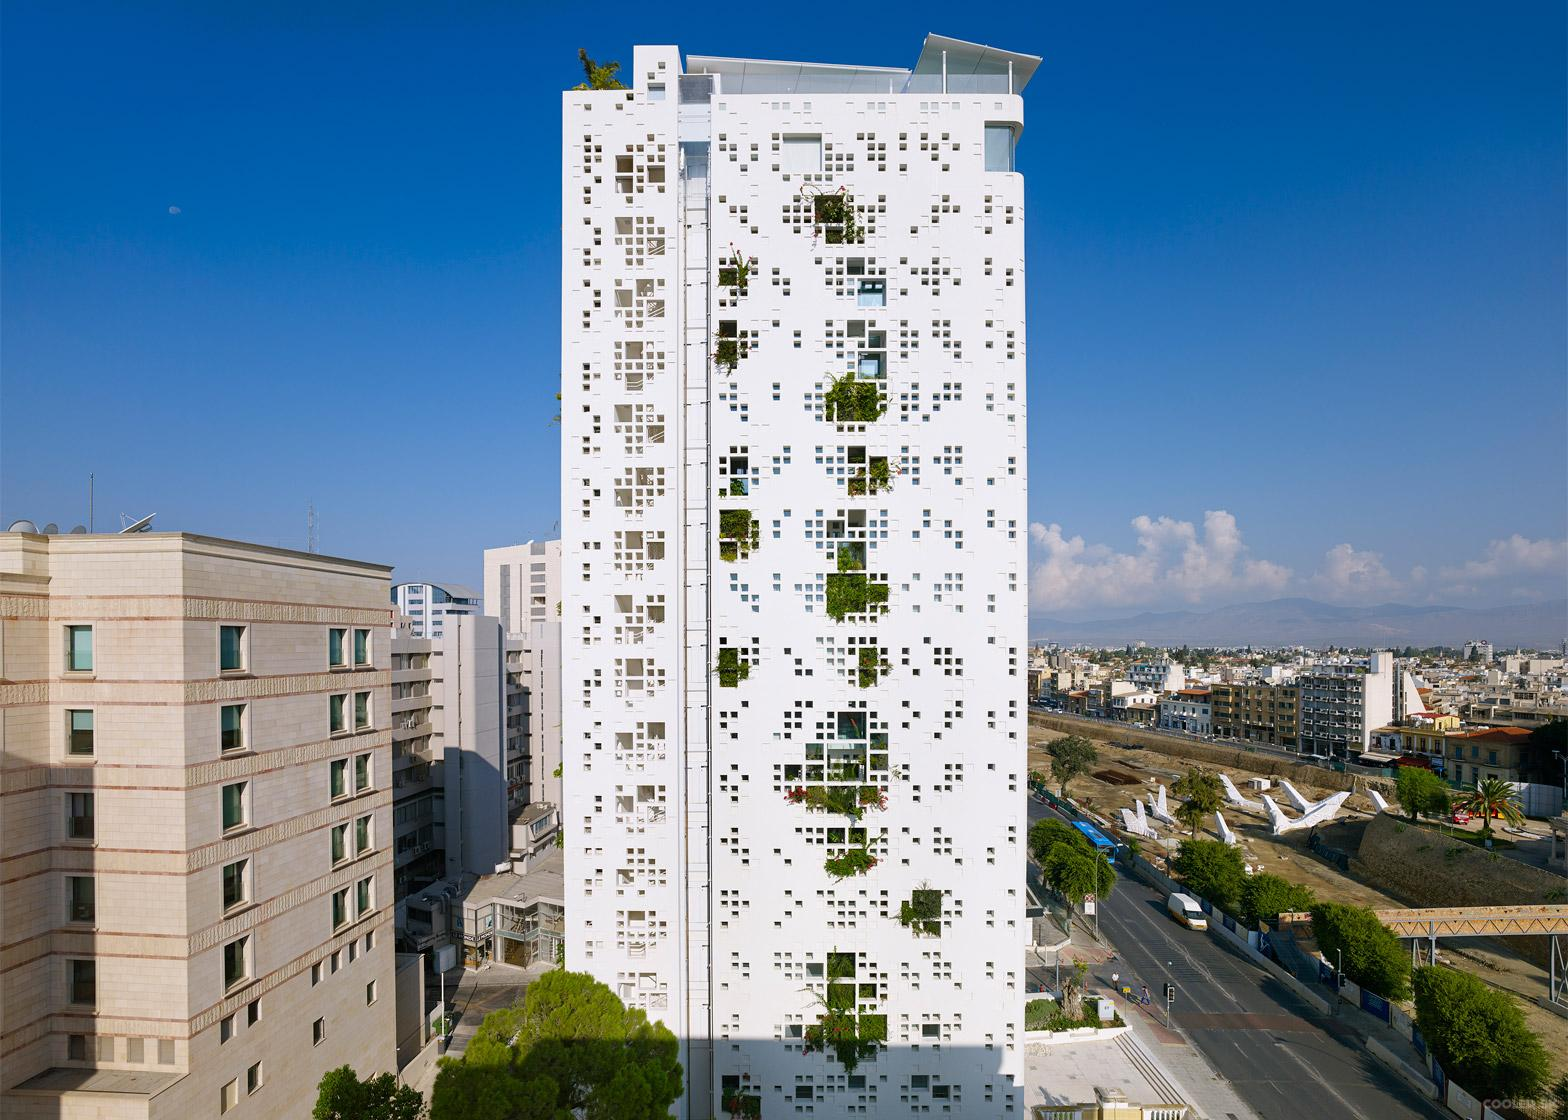 tower-25-jean-nouvel-nicosia-cyprus-pixellated-concrete_dezeen_1568_0